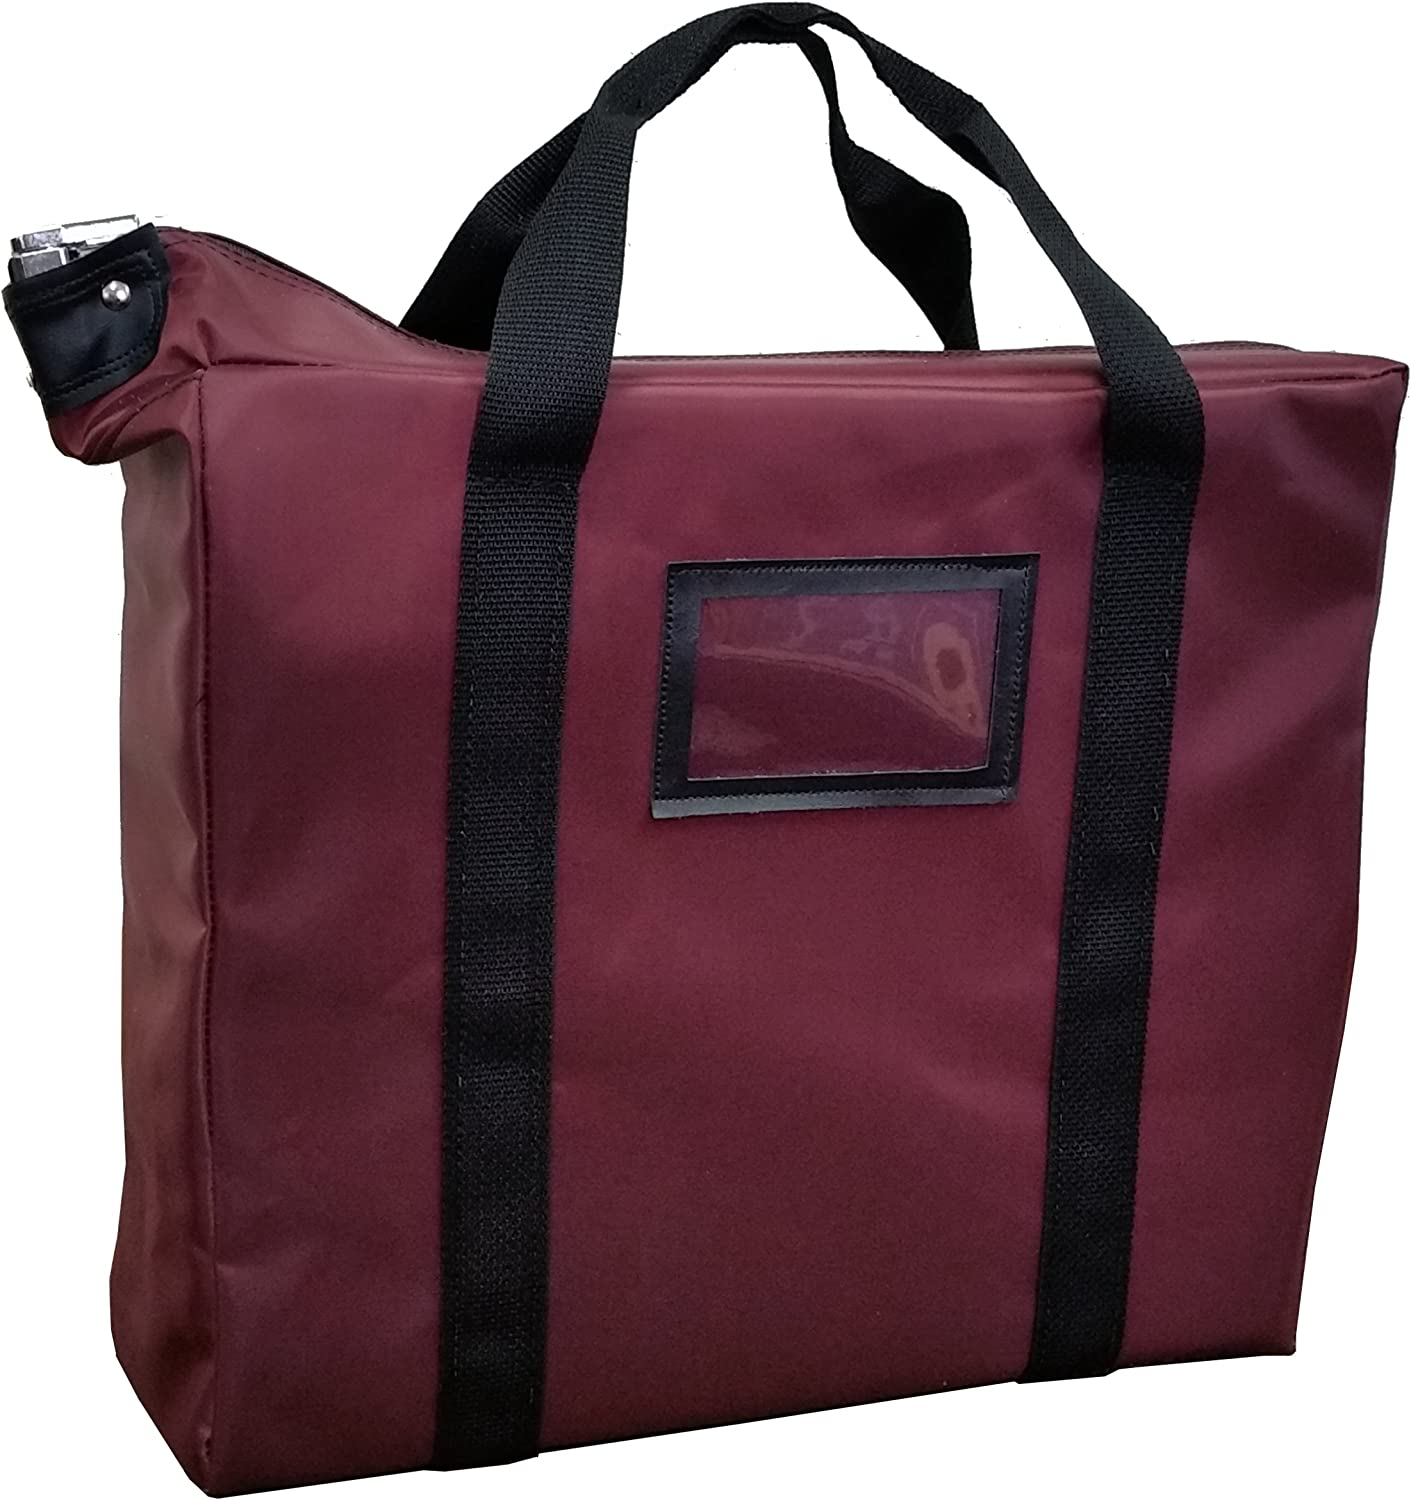 Briefcase Style Locking Document Max Popular shop is the lowest price challenge 81% OFF Burgundy Bag